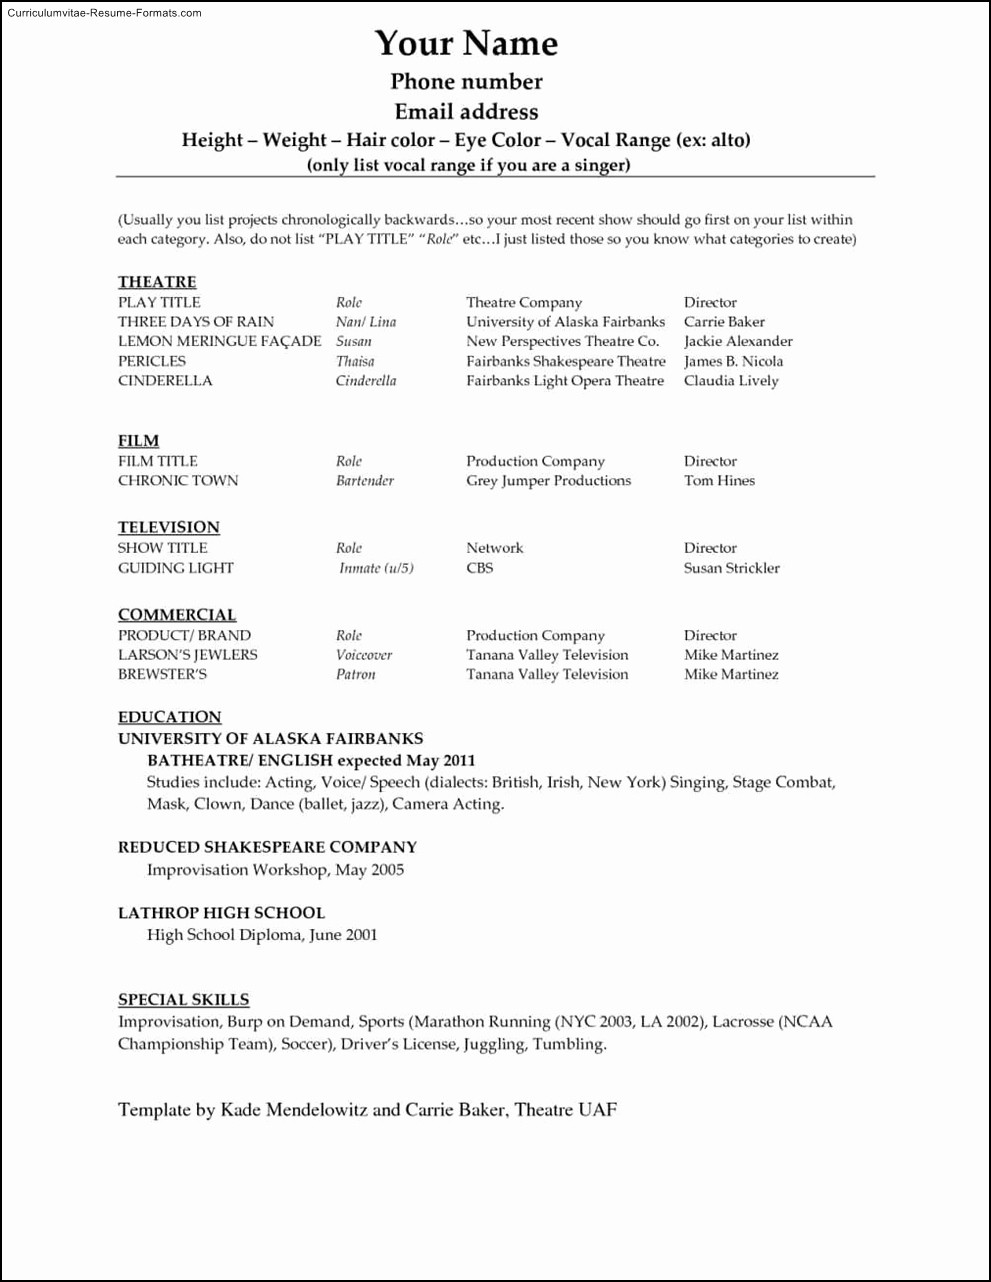 Microsoft Word 2010 Resume Templates Luxury Microsoft Word 2010 Resume Template Free Samples